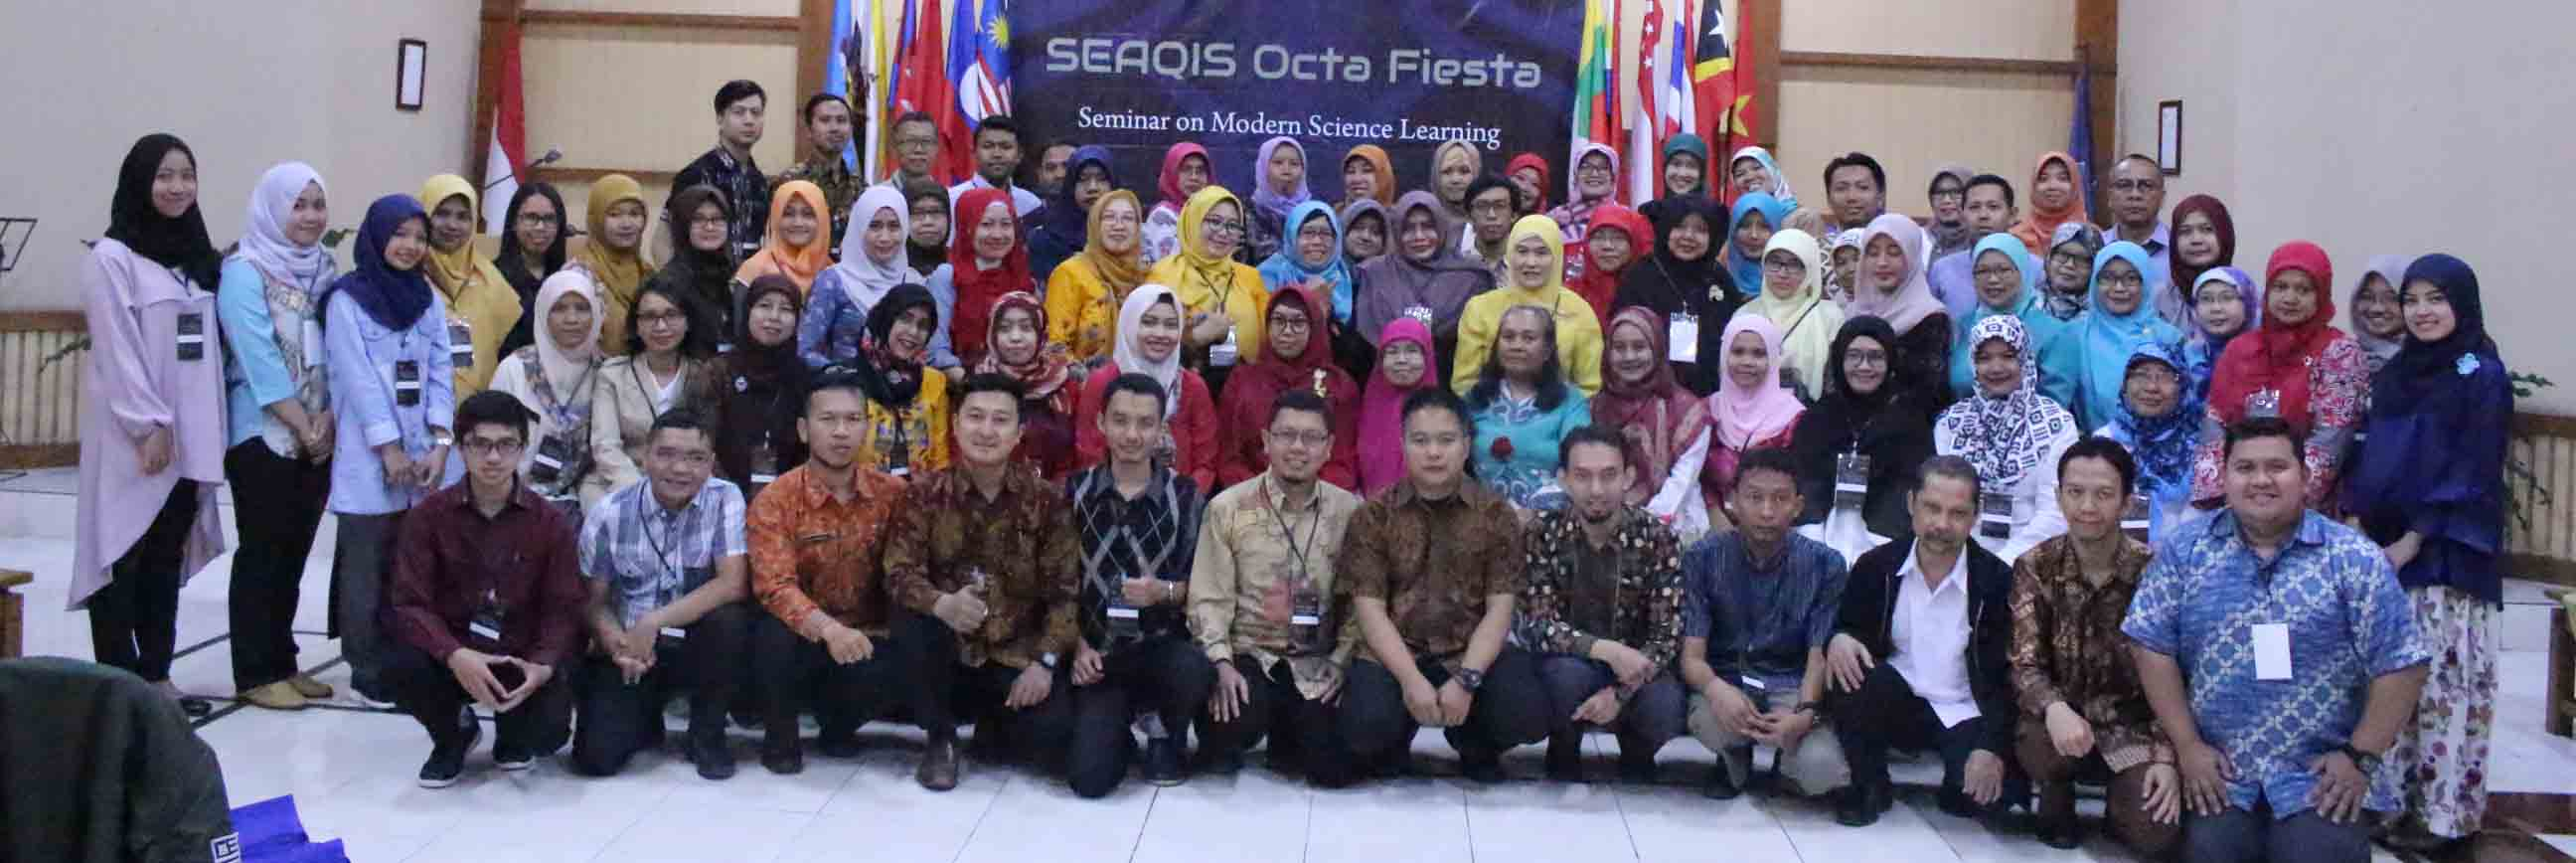 SEMINAR ON MODERN SCIENCE LEARNING – Closing event of SEAQIS Octa Fiesta